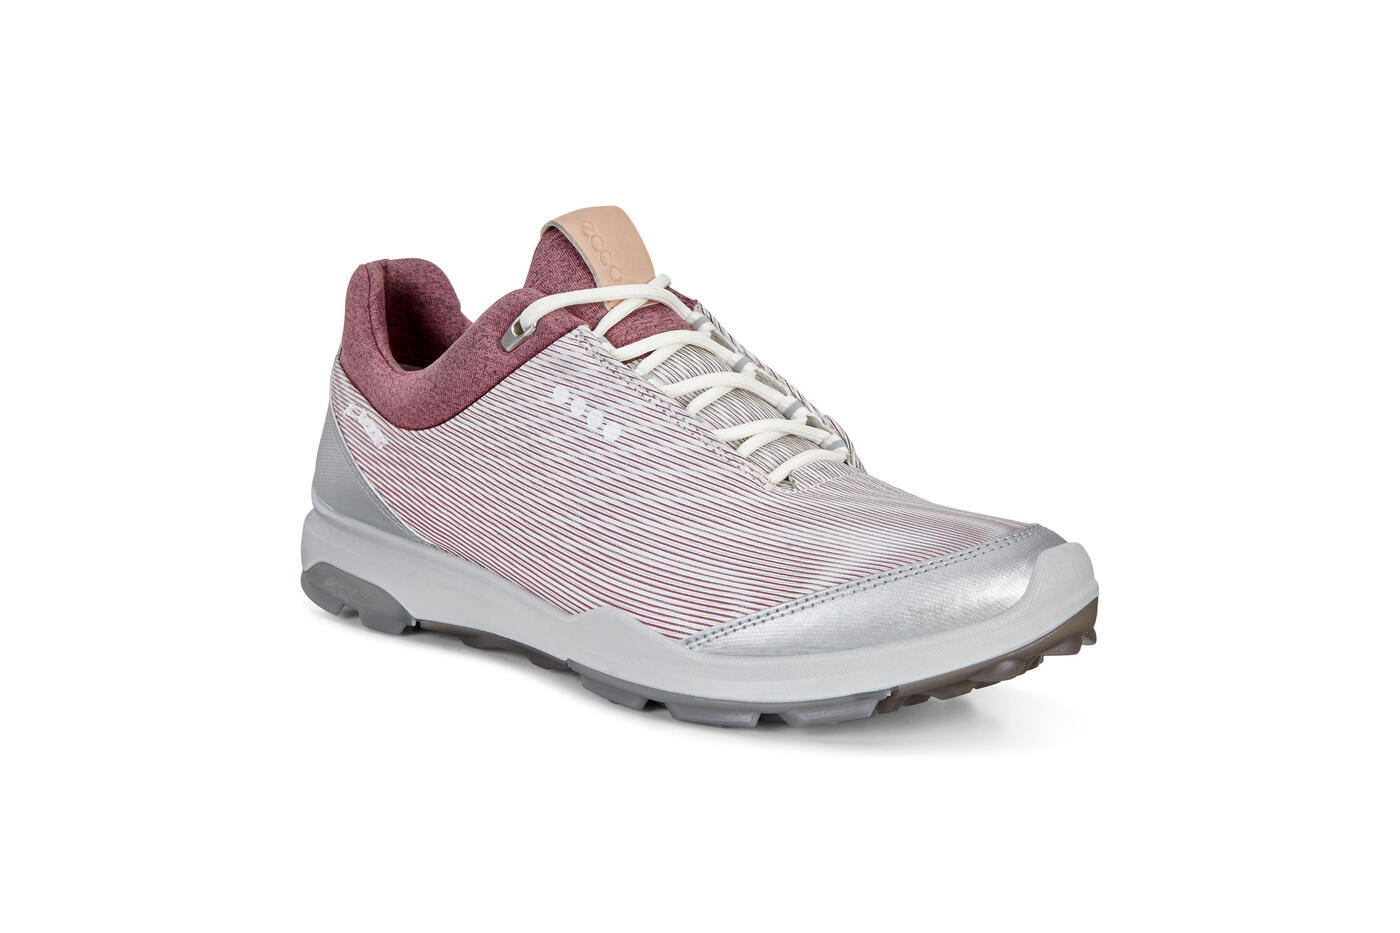 ECCO Women's Biom Hybrid 3 Golf Shoe